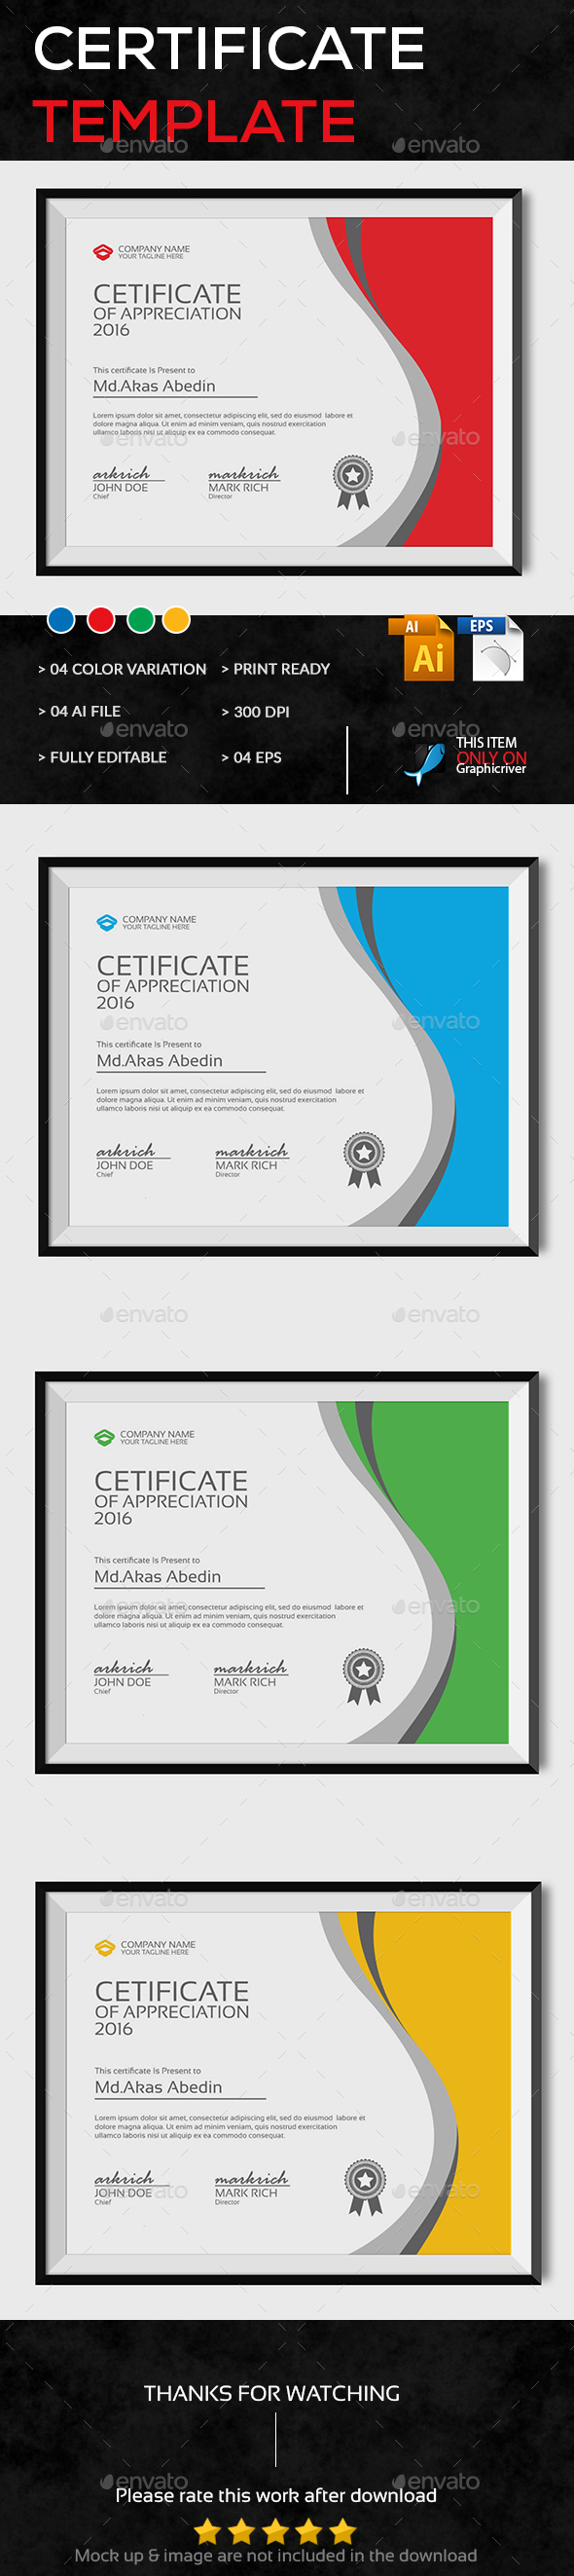 Certificate Template - Certificates Design Template Vector EPS, AI ...